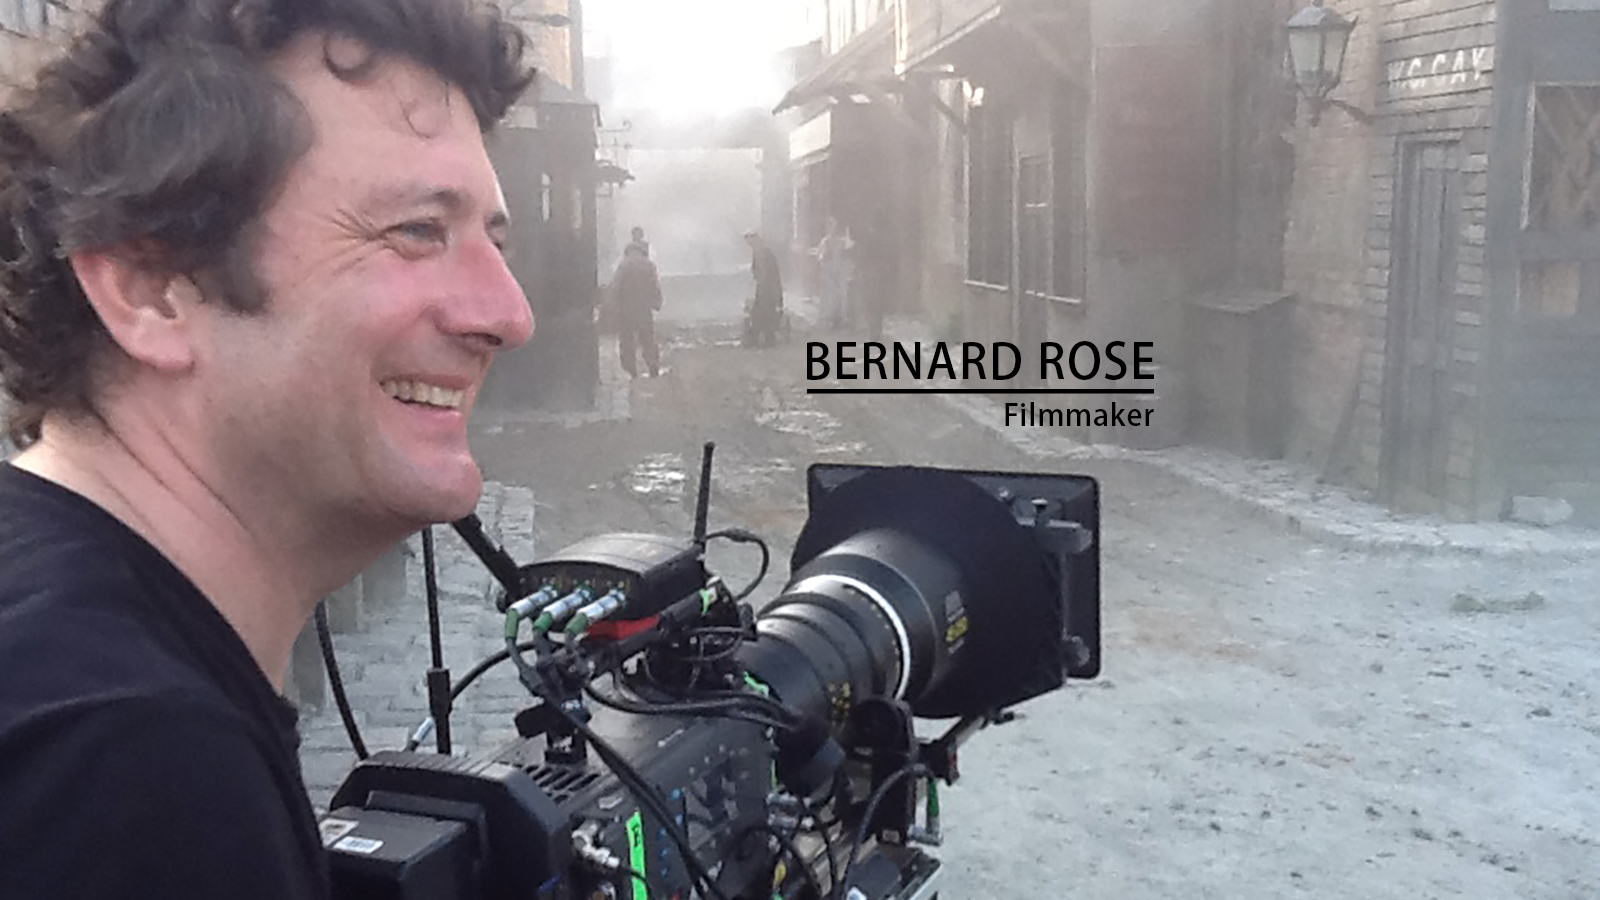 Director Bernard Rose. He'll be in Baton Rouge May 9th for the American Premiere of his new film  Fankenstein , at the Louisiana International Film Festival. Credit: bernardrosedirector.com.